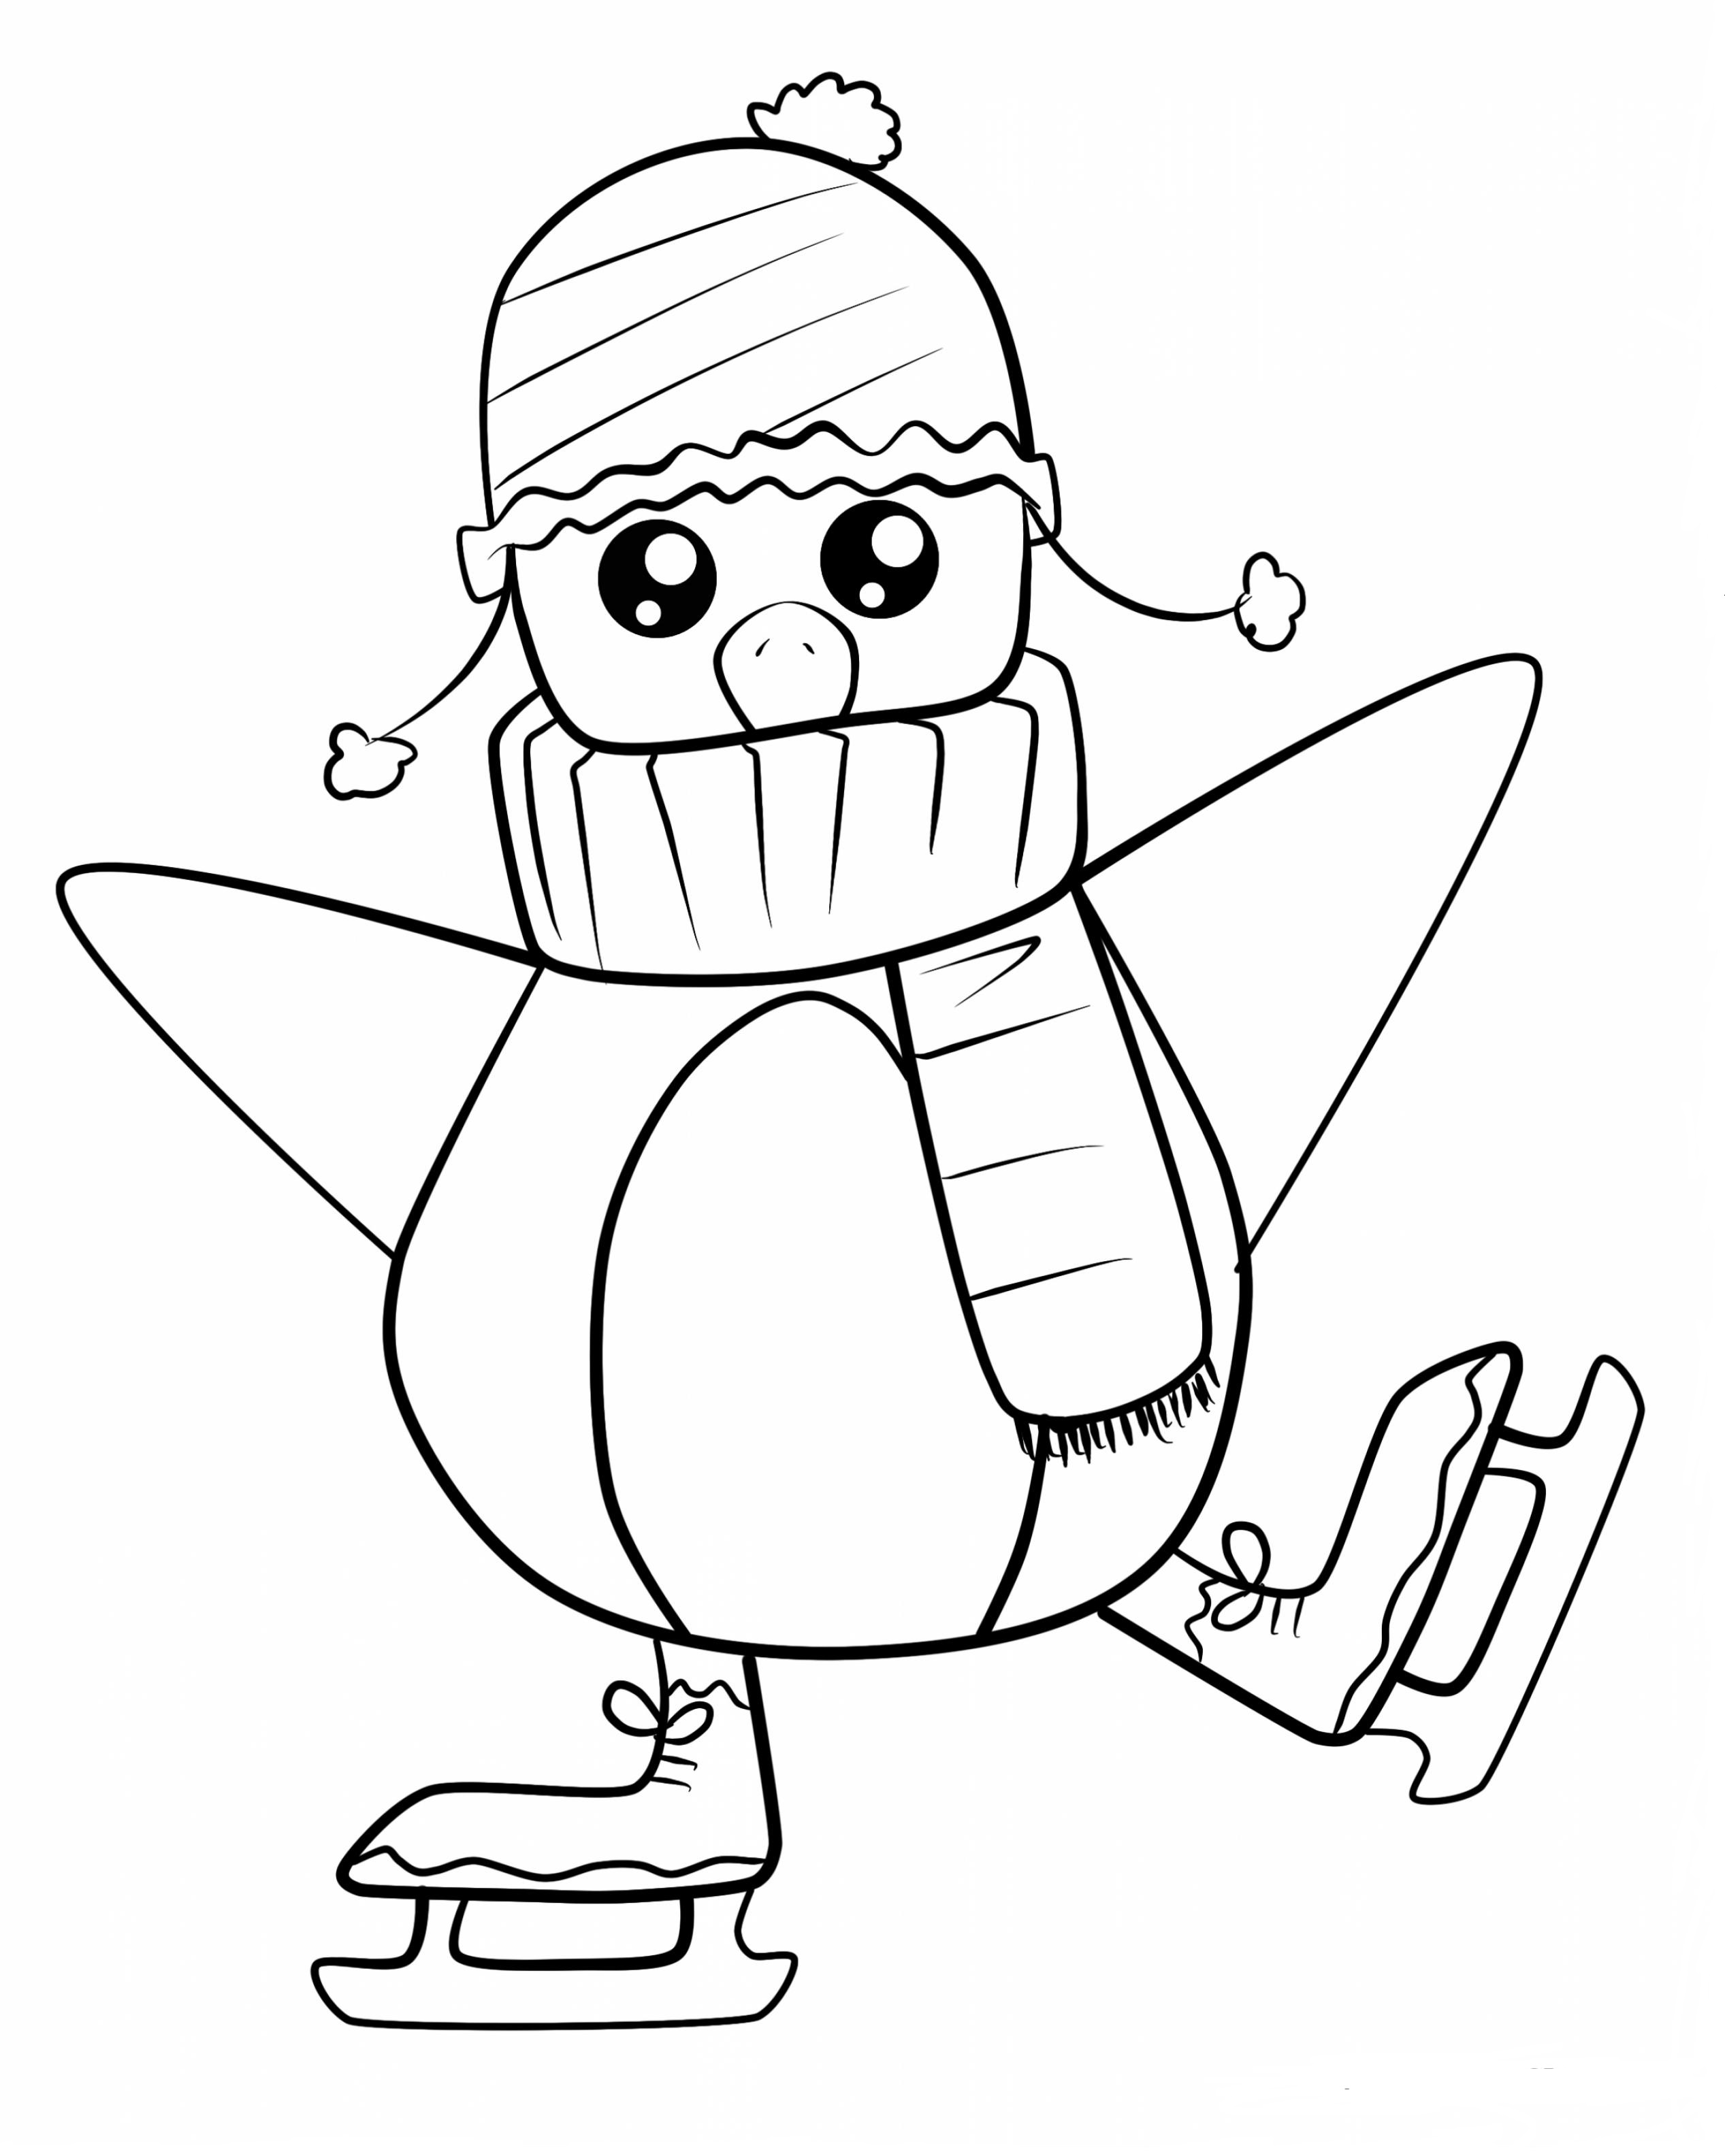 Penguin Ice Skating Coloring Page